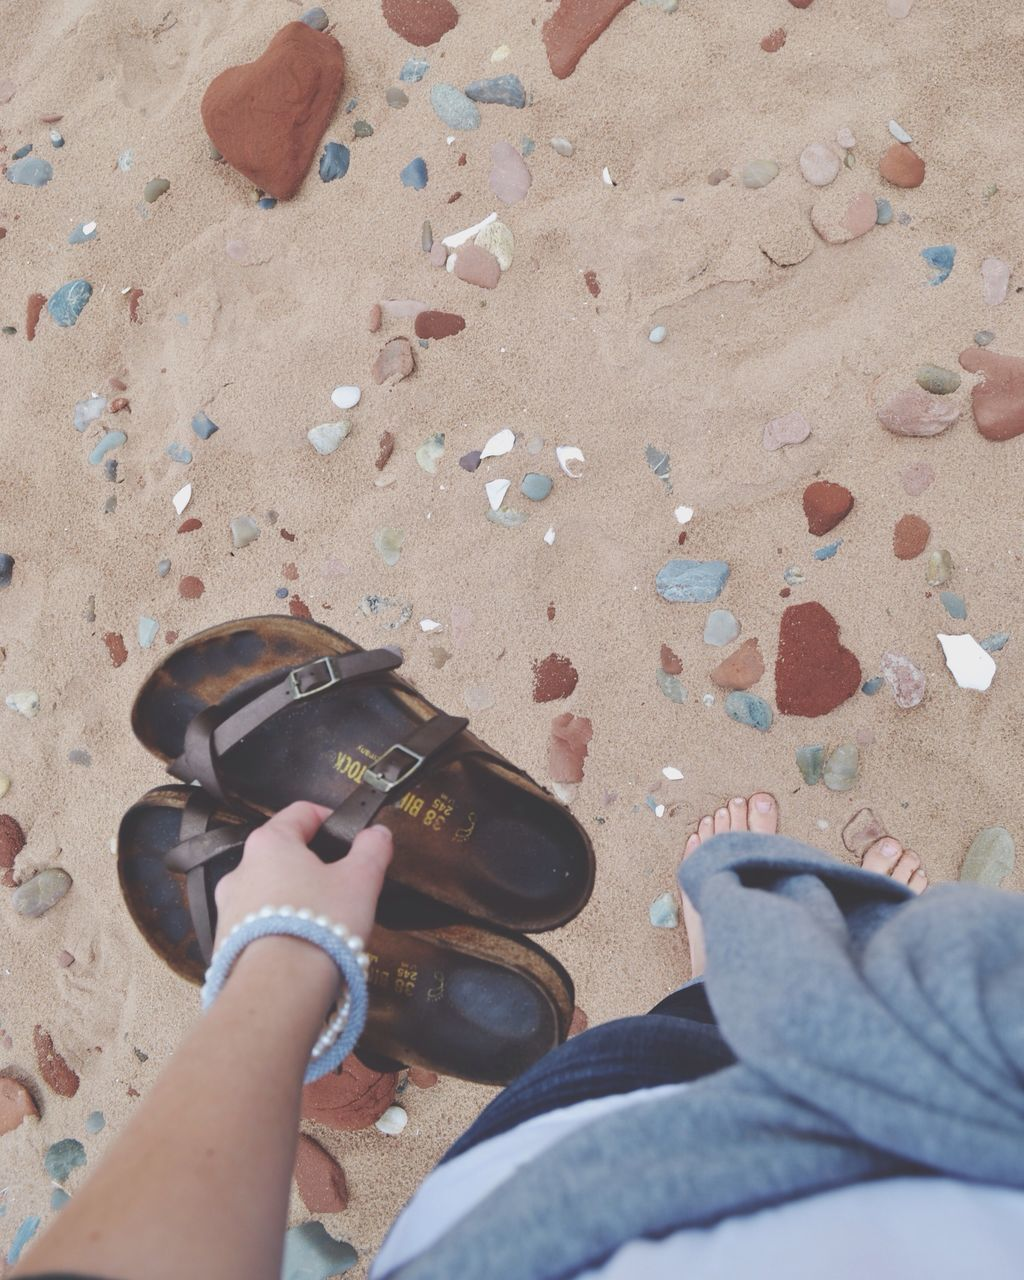 real people, human body part, one person, human hand, personal perspective, lifestyles, human leg, holding, men, high angle view, leisure activity, low section, sand, day, women, beach, outdoors, close-up, people, adult